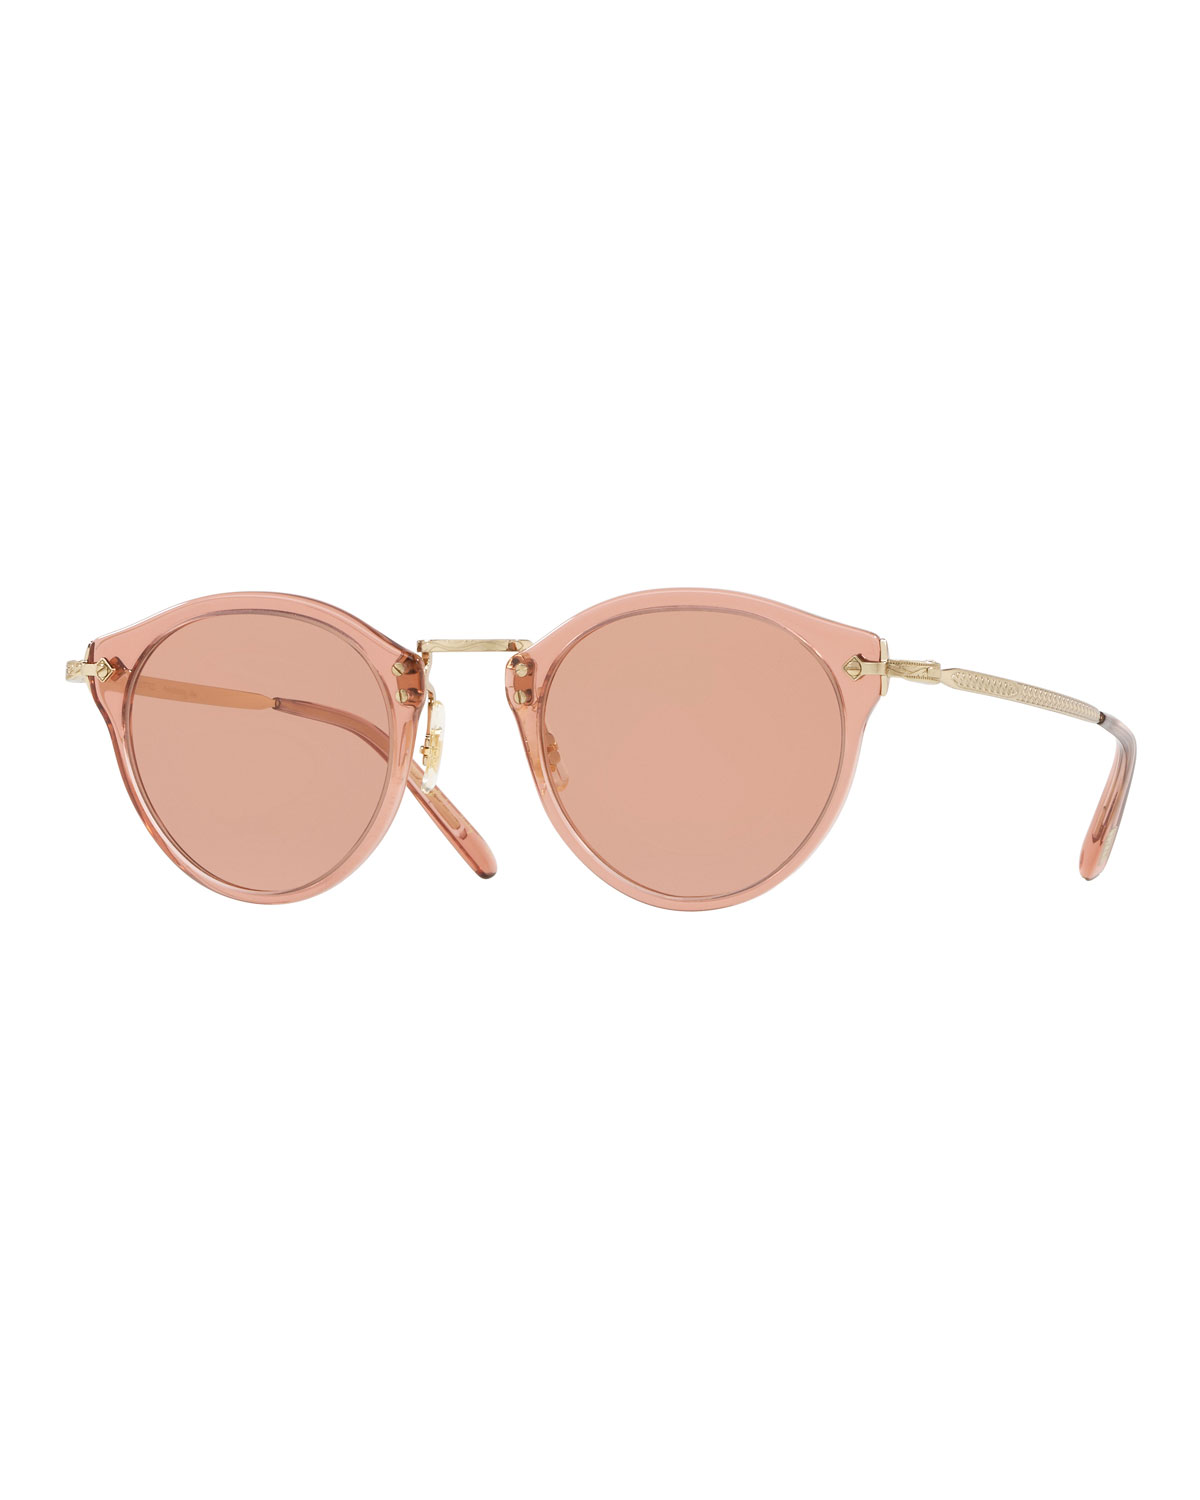 Oliver Peoples Sunglasses ACETATE & METAL ROUND PHOTOCHROMIC SUNGLASSES